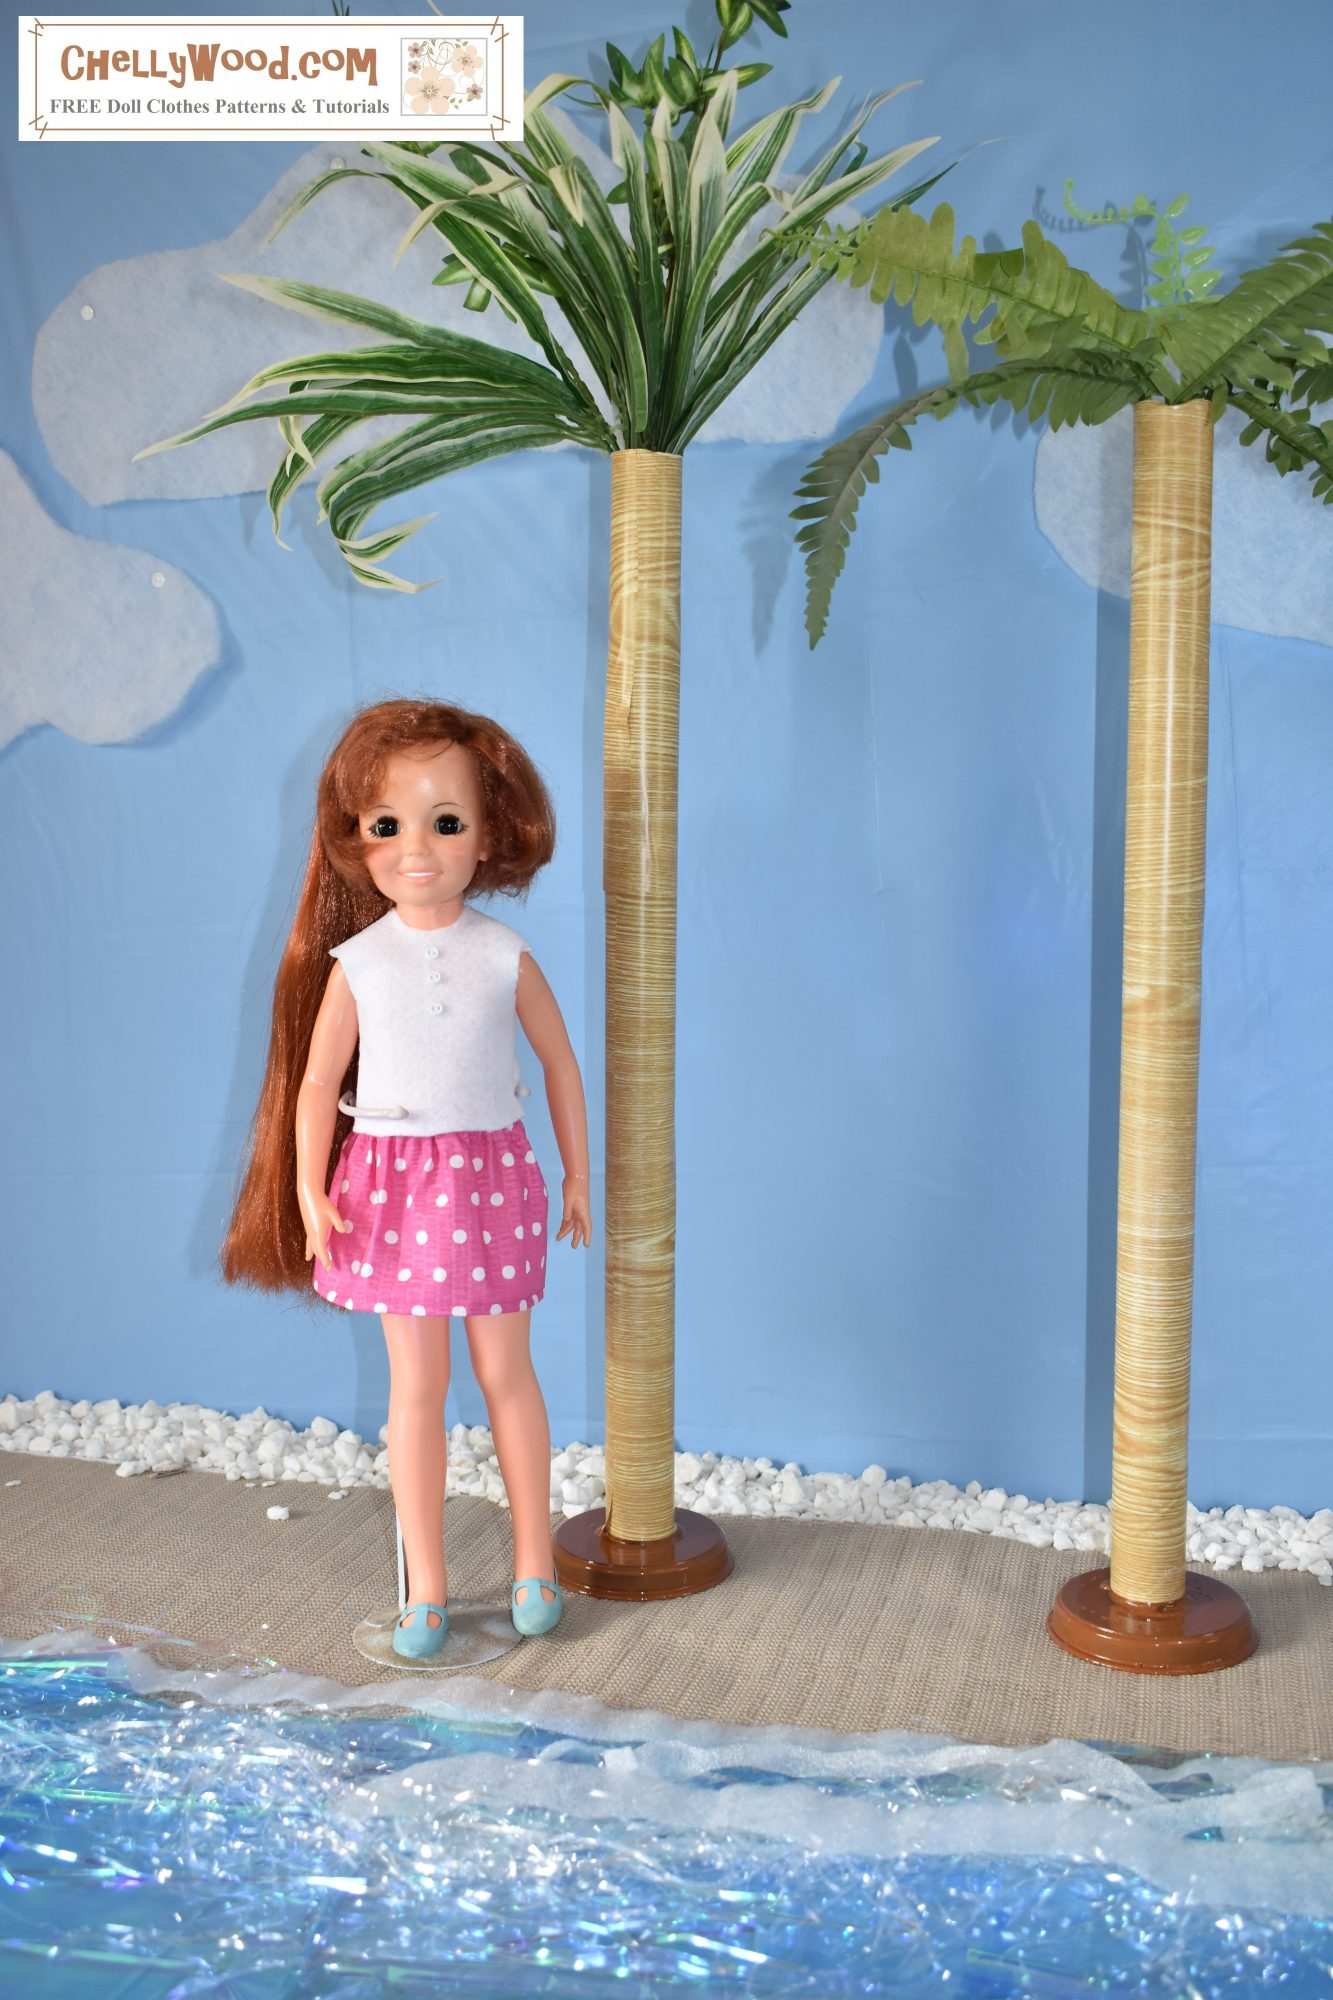 A vintage Crissy doll stands beside two palm trees on a beach. She wears a very short mini skirt made of pink seersucker fabric with white polka dots. She also wears a white felt sleeveless summer shirt.